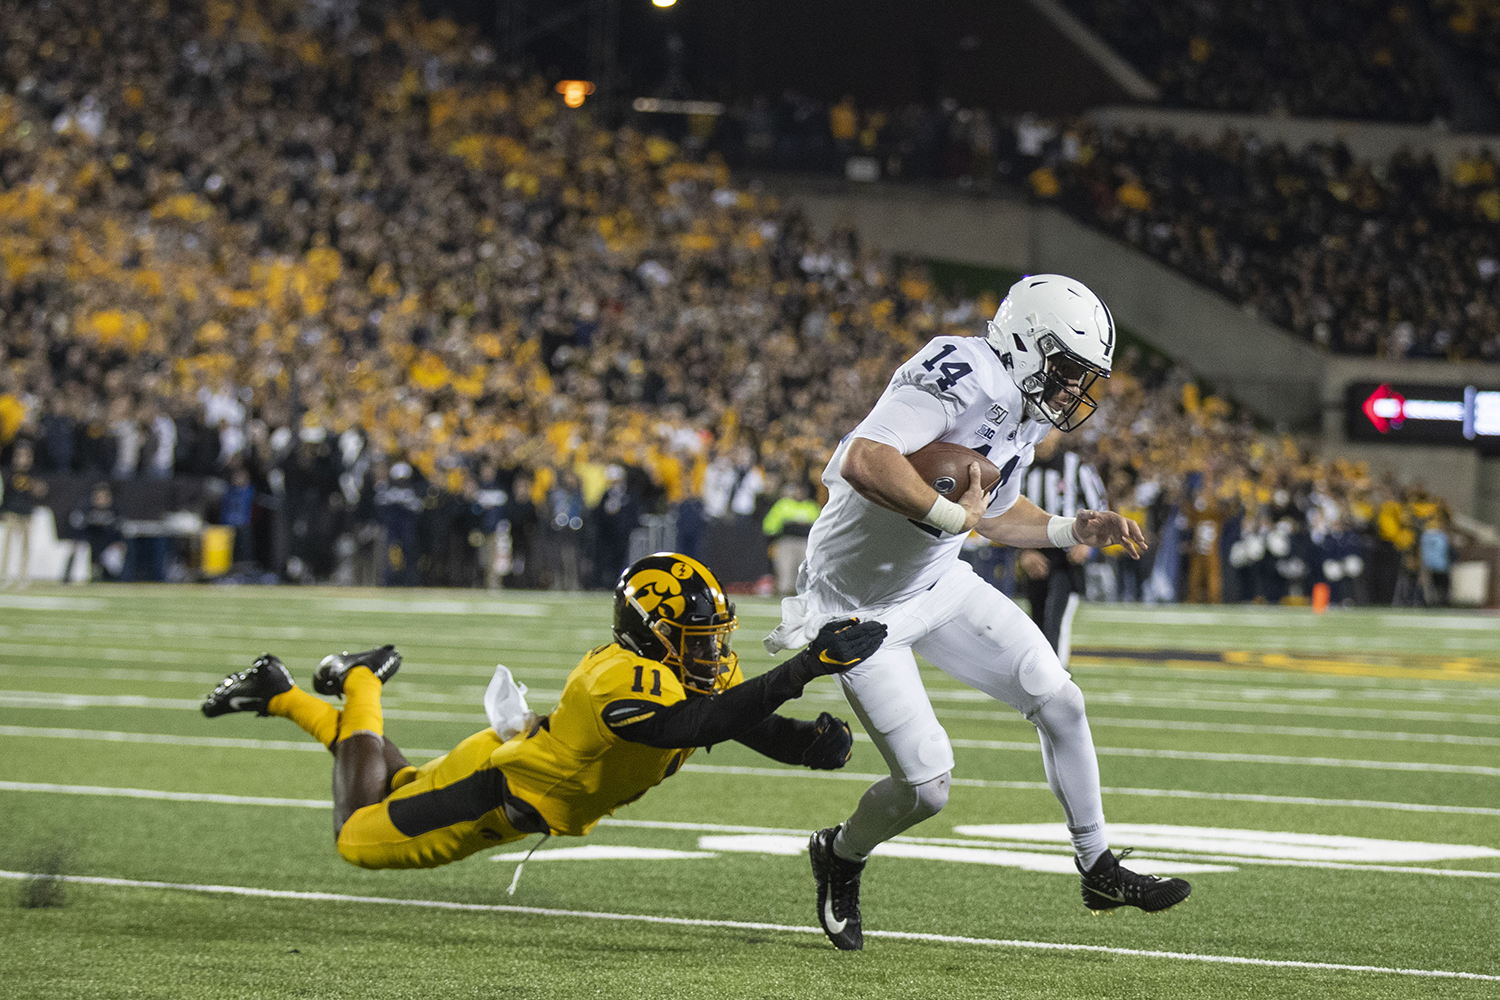 Iowa DB Michael Ojemudia attempt to tackle Penn State QB Sean Clifford during the Iowa football vs. Penn State game in Kinnick Stadium on Saturday, Oct. 12, 2019. The Nittany Lions defeated the Hawkeyes 17-12. (Katie Goodale/The Daily Iowan)